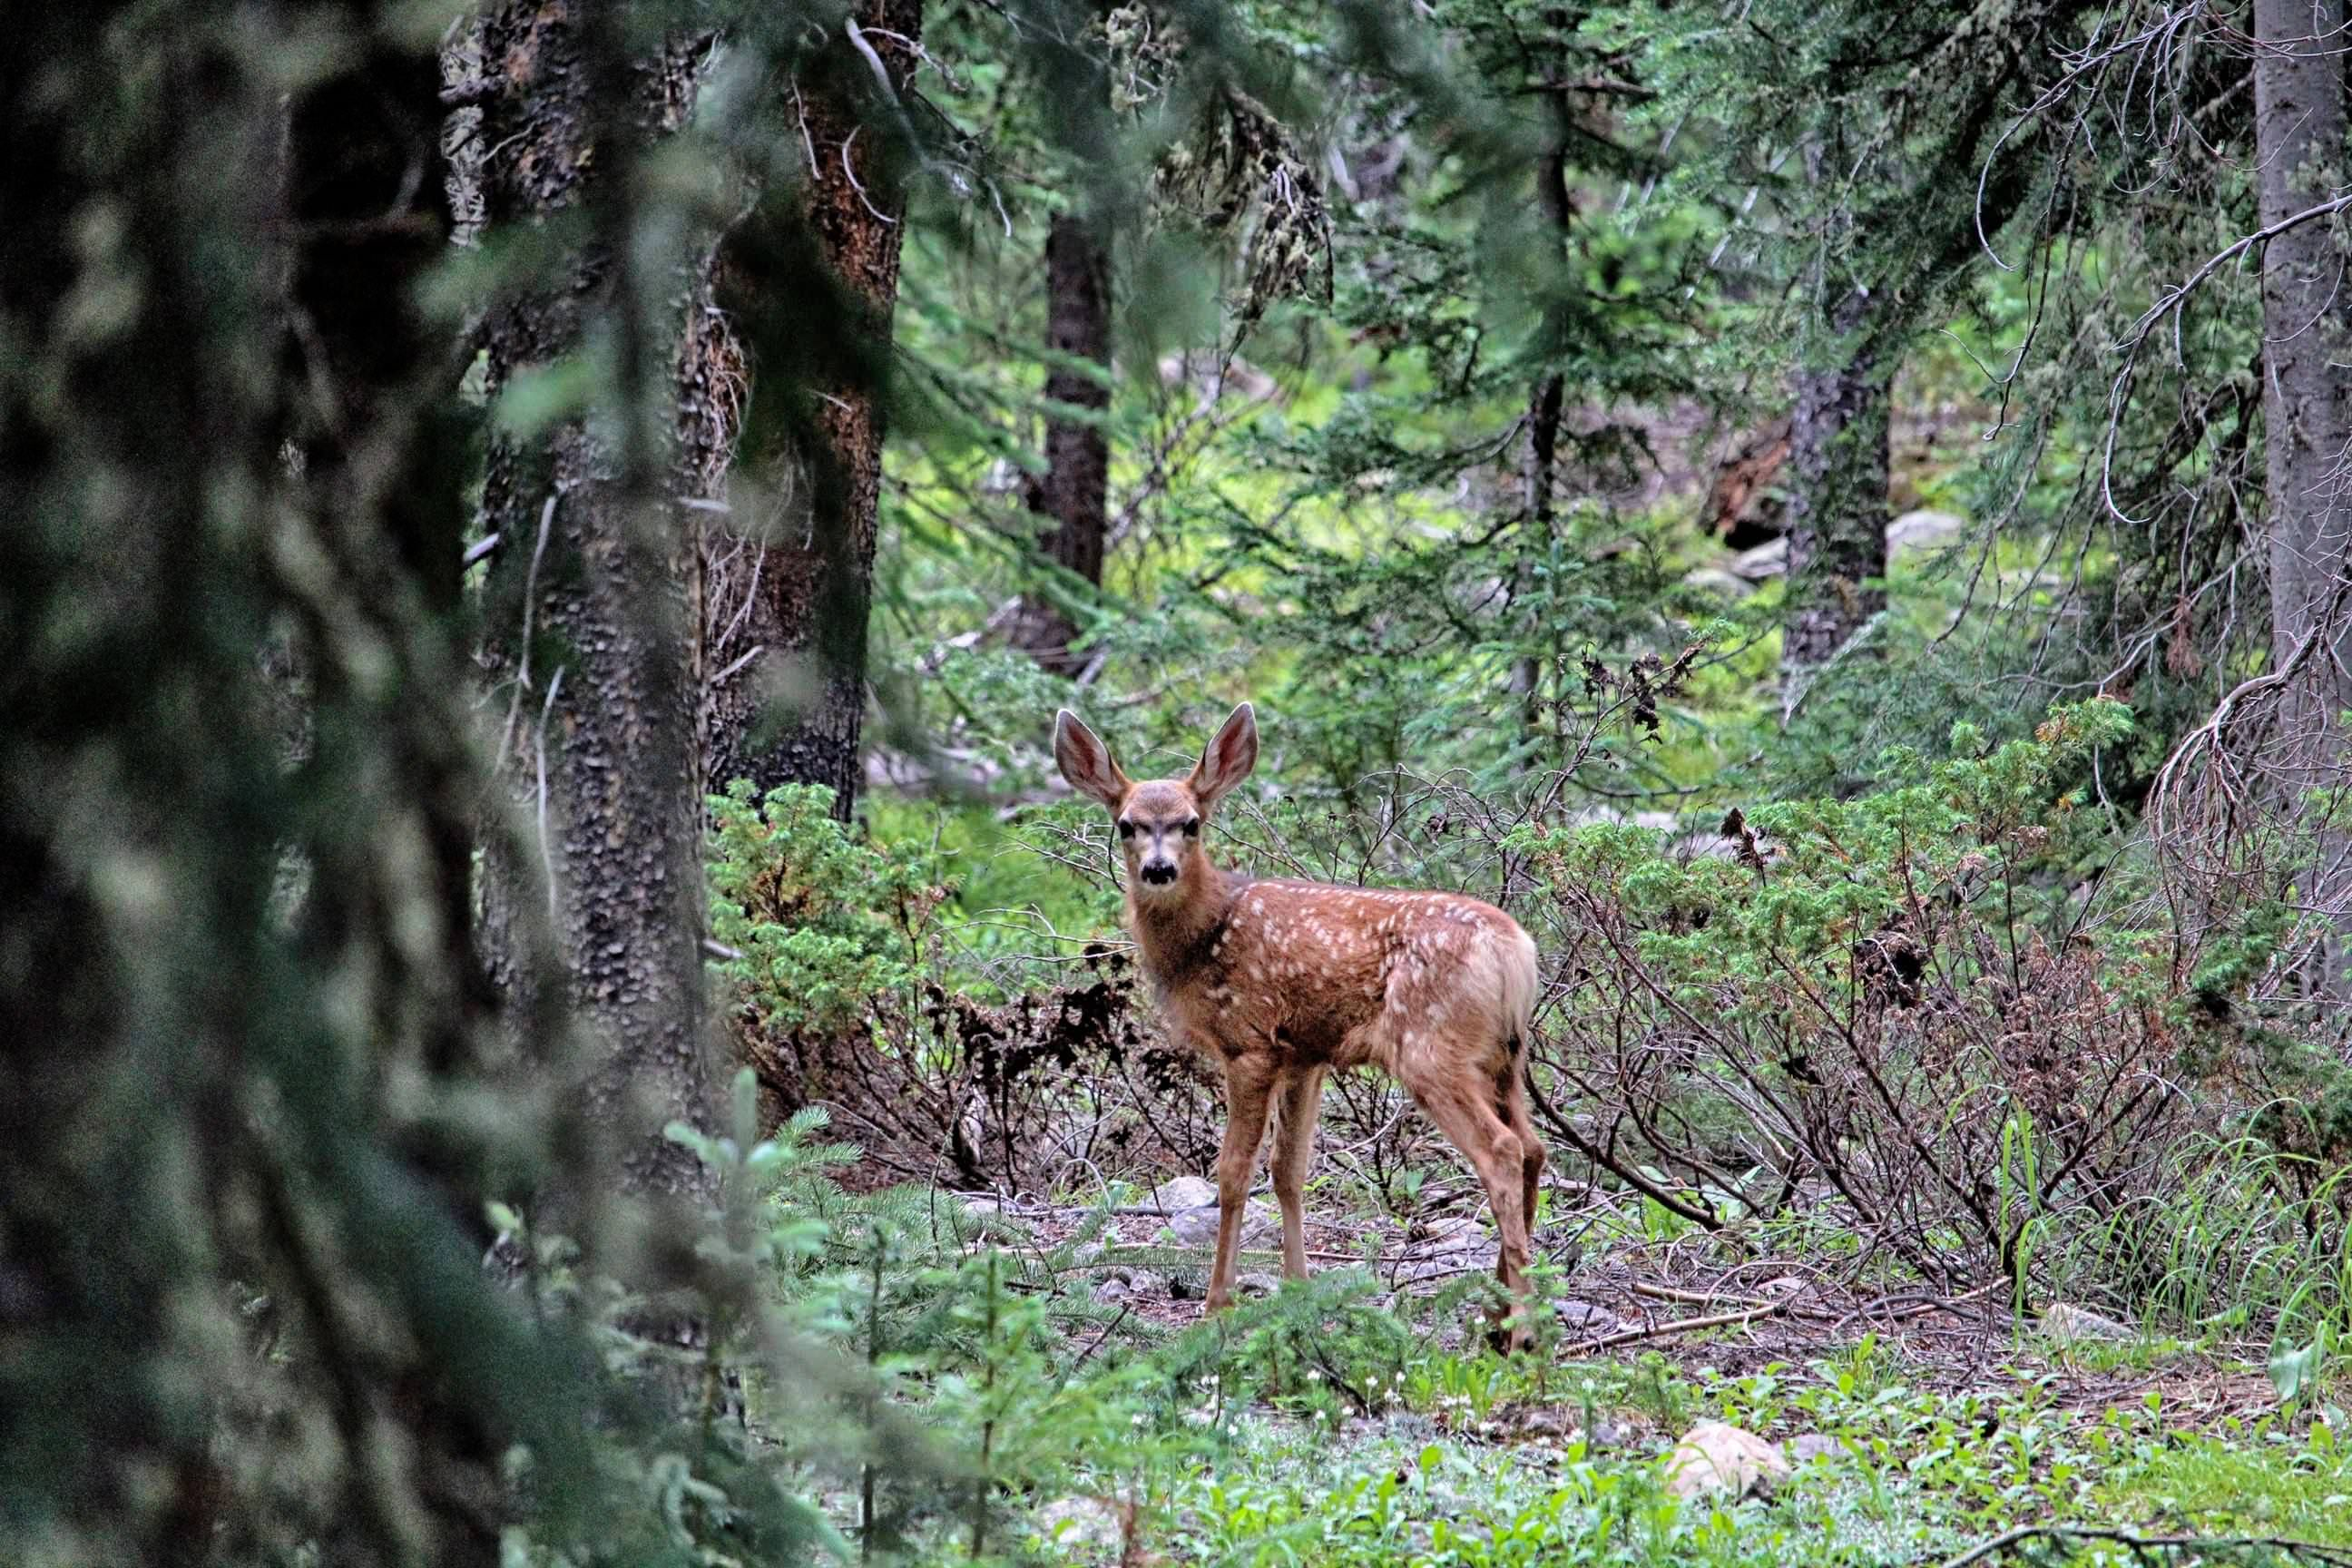 Young deer in Rocky Mountain National Park on the Lulu city trail. Cannon EOS Rebel T5 55-250mm lens.